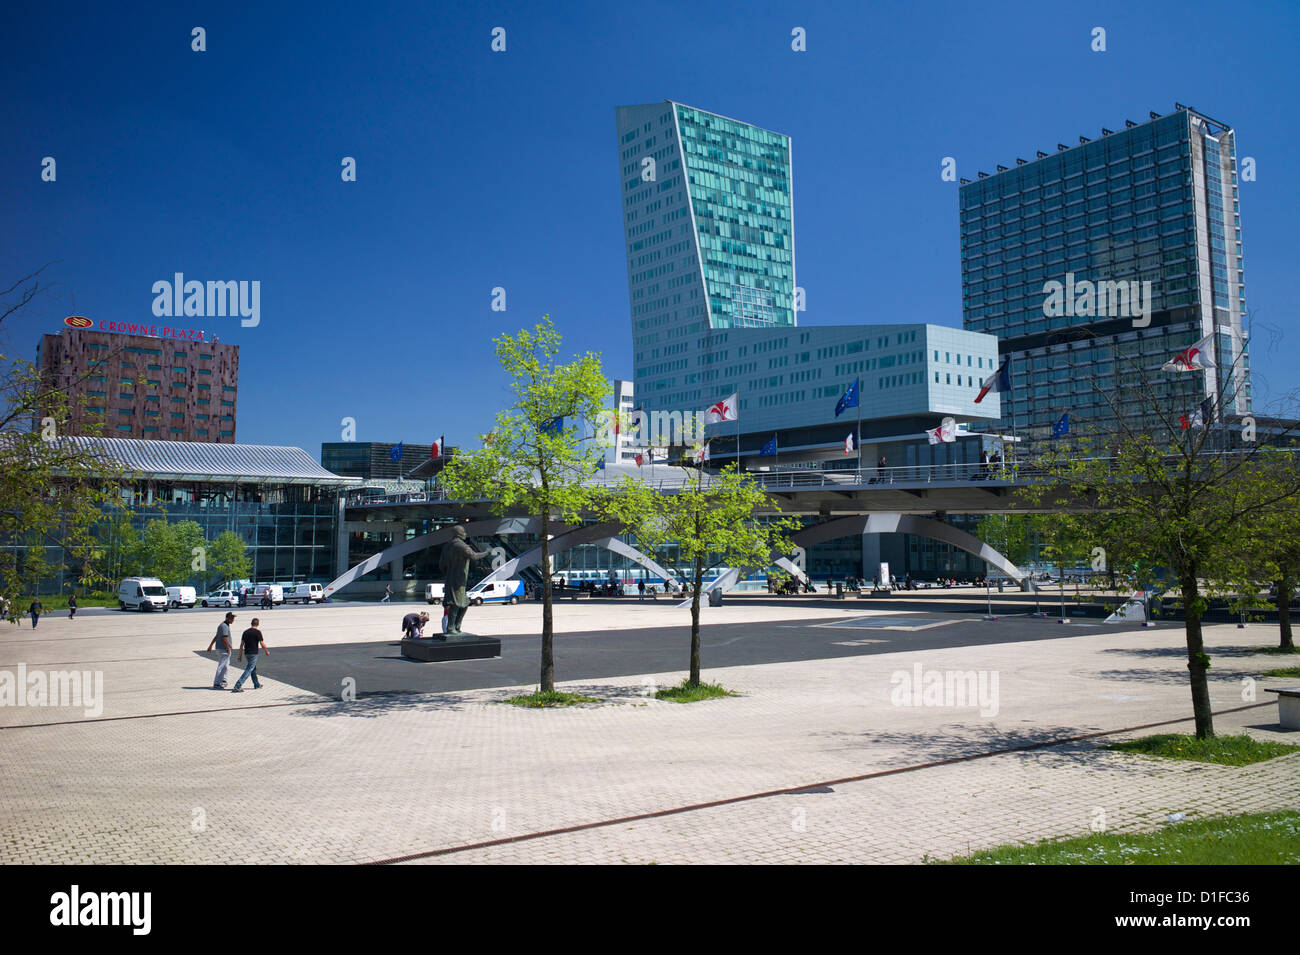 Place Francois Mitterand and Lille Europe TGV station, Lille, Nord-Pas de Calais, France, Europe - Stock Image